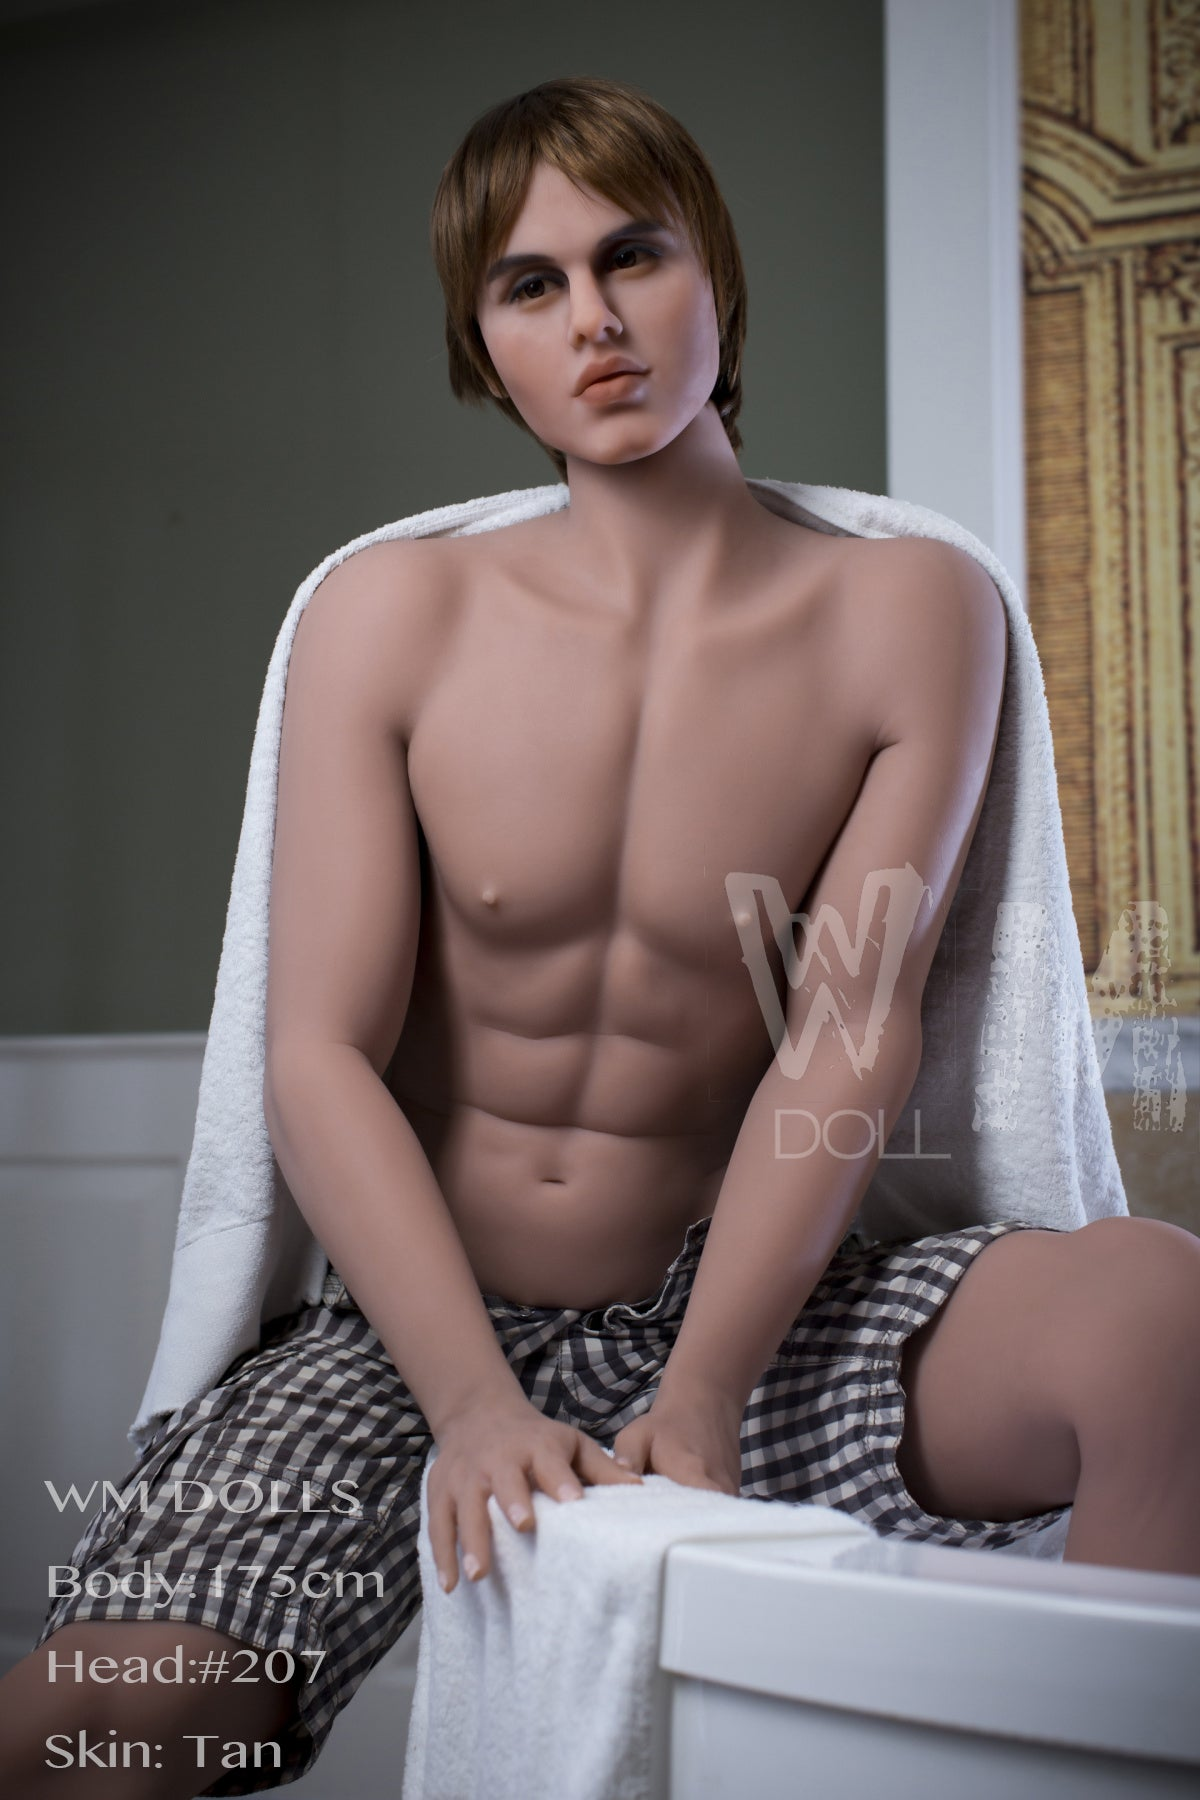 Sex doll for man